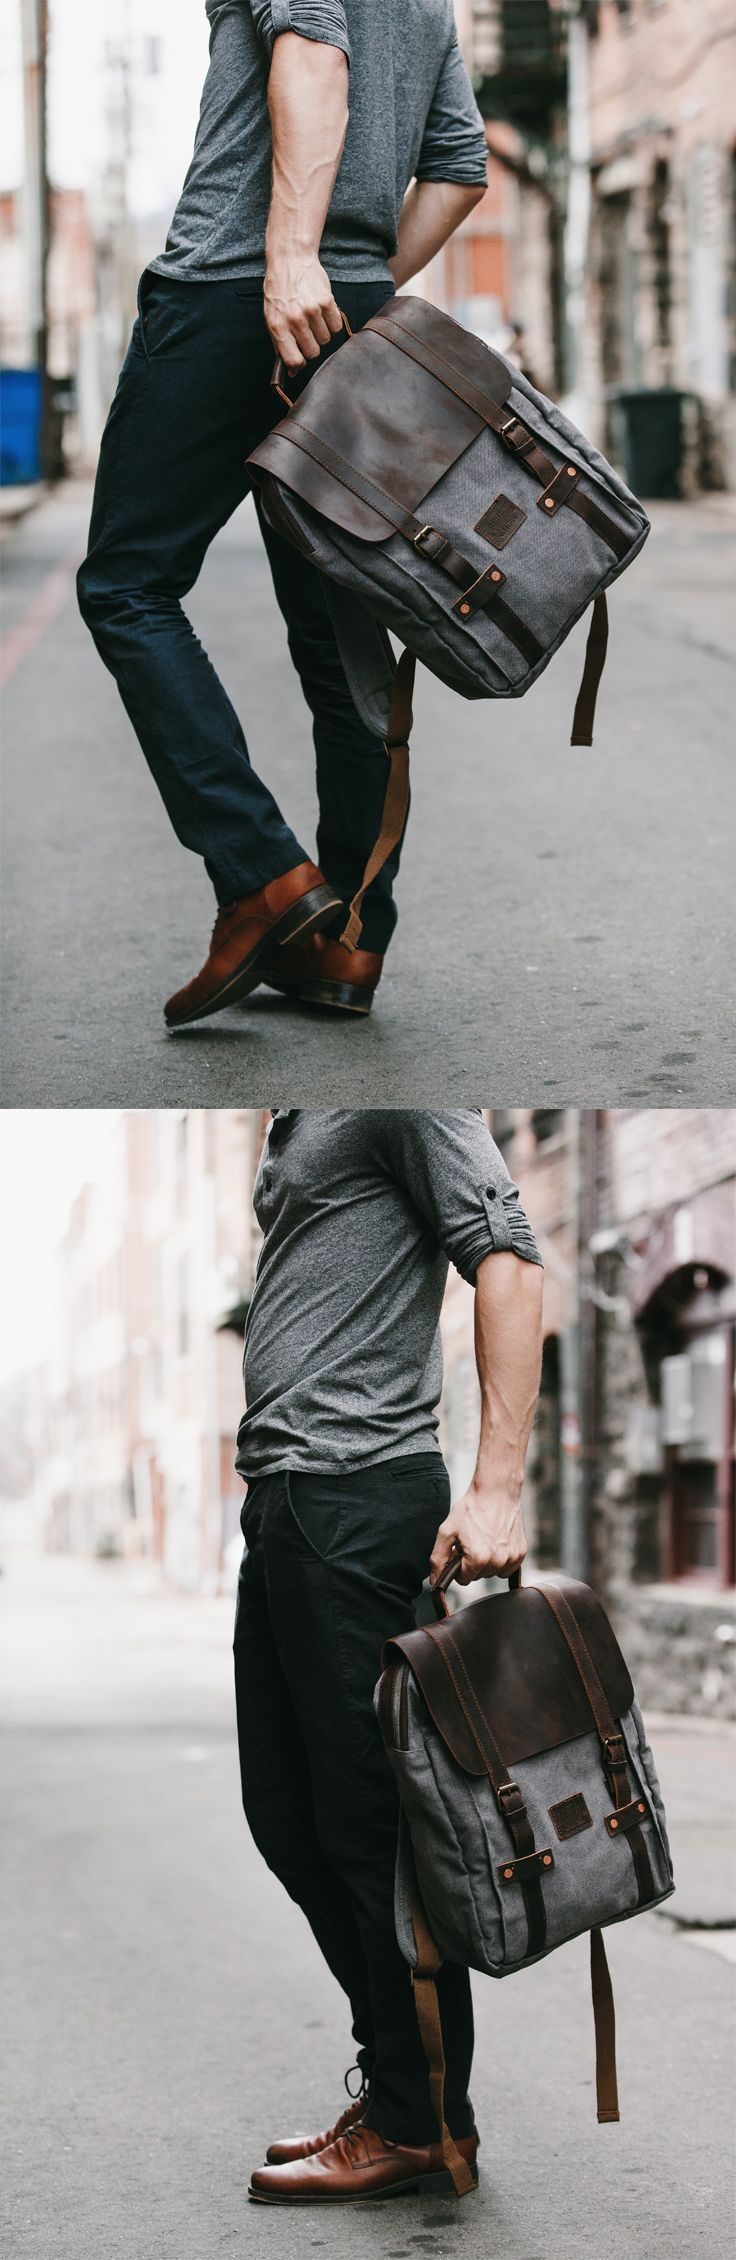 """waxed canvas bag,hipster backpack,backpacks,Men's backpack,canvas backpack,gray backpack,travel backpack,men's canvas bag,men's bag,new york,mens rucksack,leather backpack,travel bag,waxed rucksack,canvas,laptop bag,waterproof backpack,water resitant bag,grey,brown,green,black,rugged,13""""laptop backpack,15""""backpack,durable,vintage,hipster,made in usa,made in america,cool,2016,stylish,cotton,leather,cow hide,copper rivets,PNW,pacific northwest,travel,hiking backpack,outdoor…"""